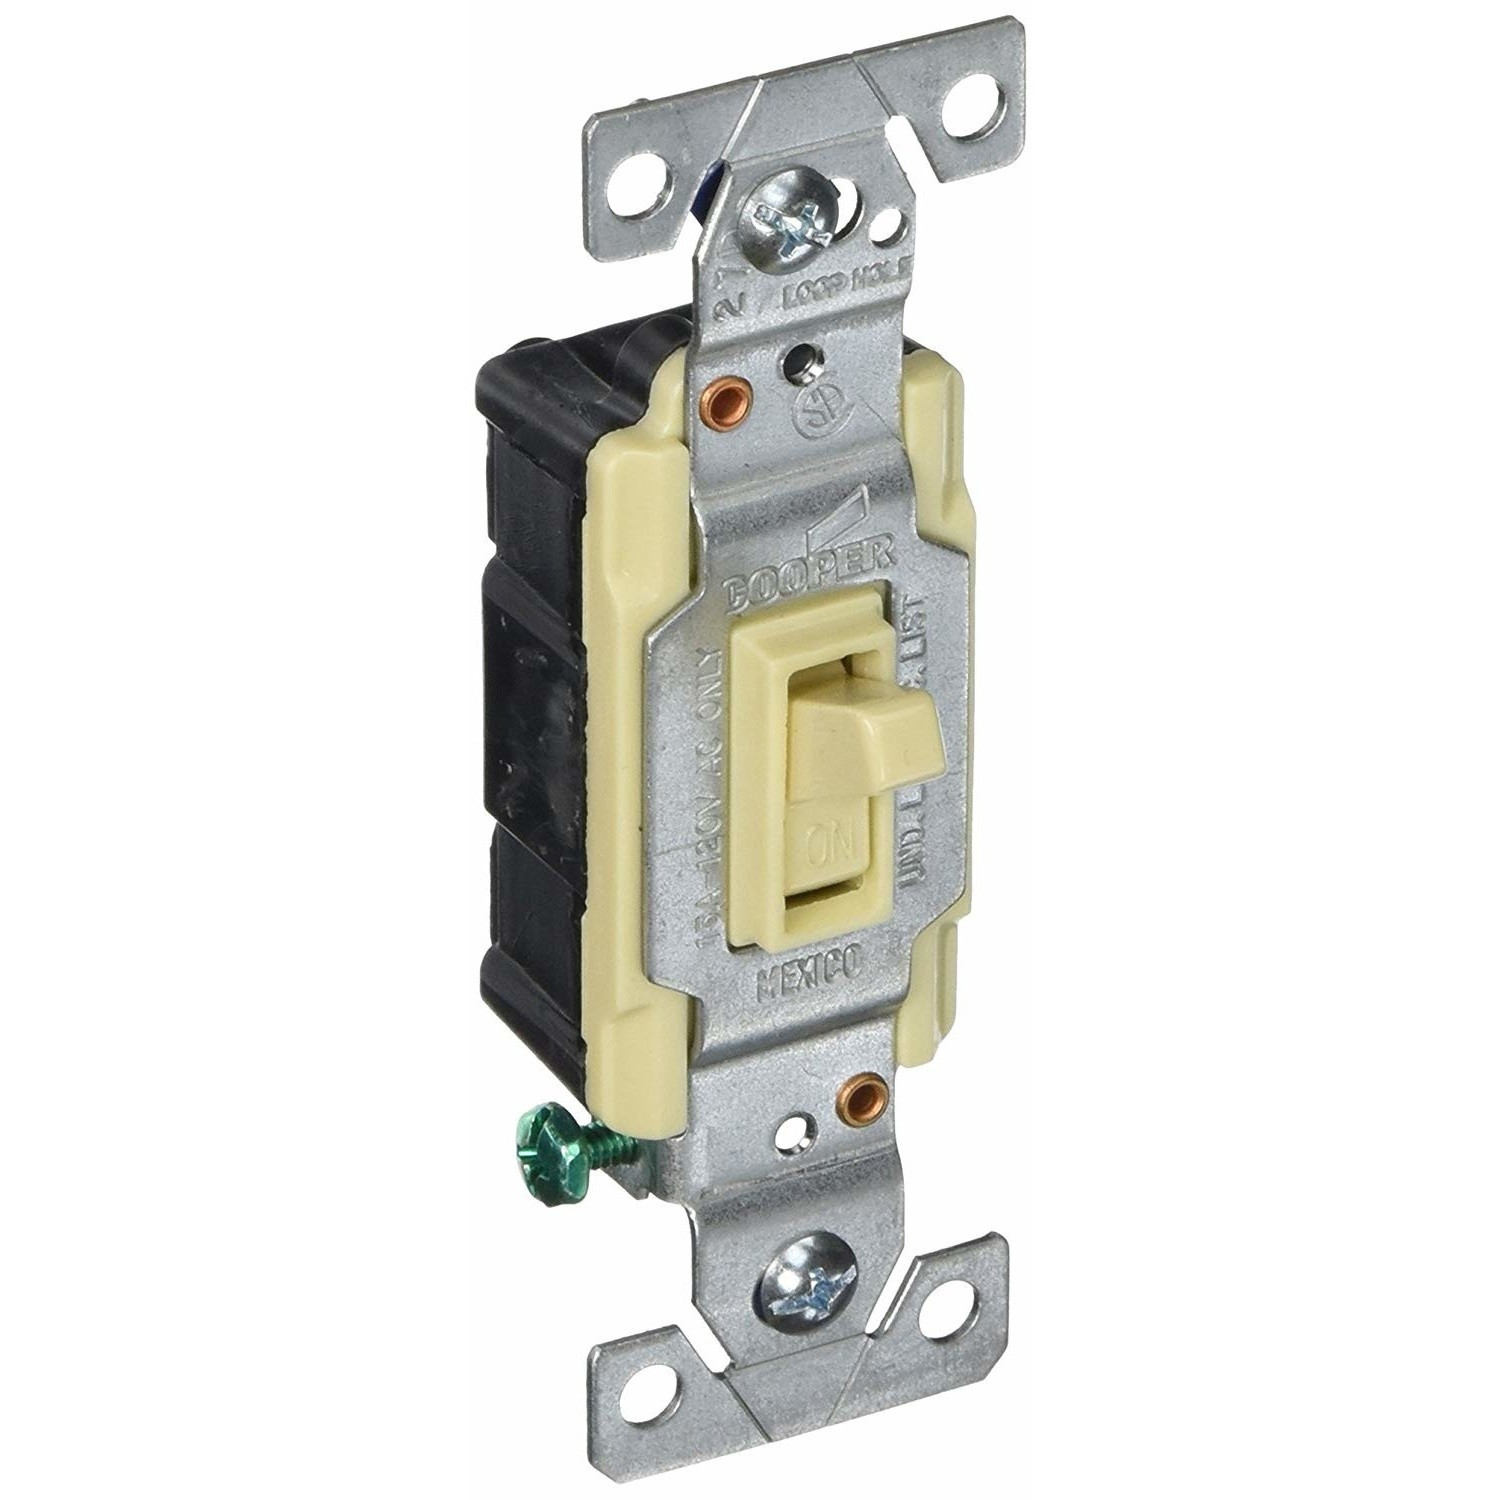 cooper wiring c1301 7ltv 1 pole ivory lighted toggle switch cooper wiring c1301 7ltv 1 pole [ 1500 x 1500 Pixel ]